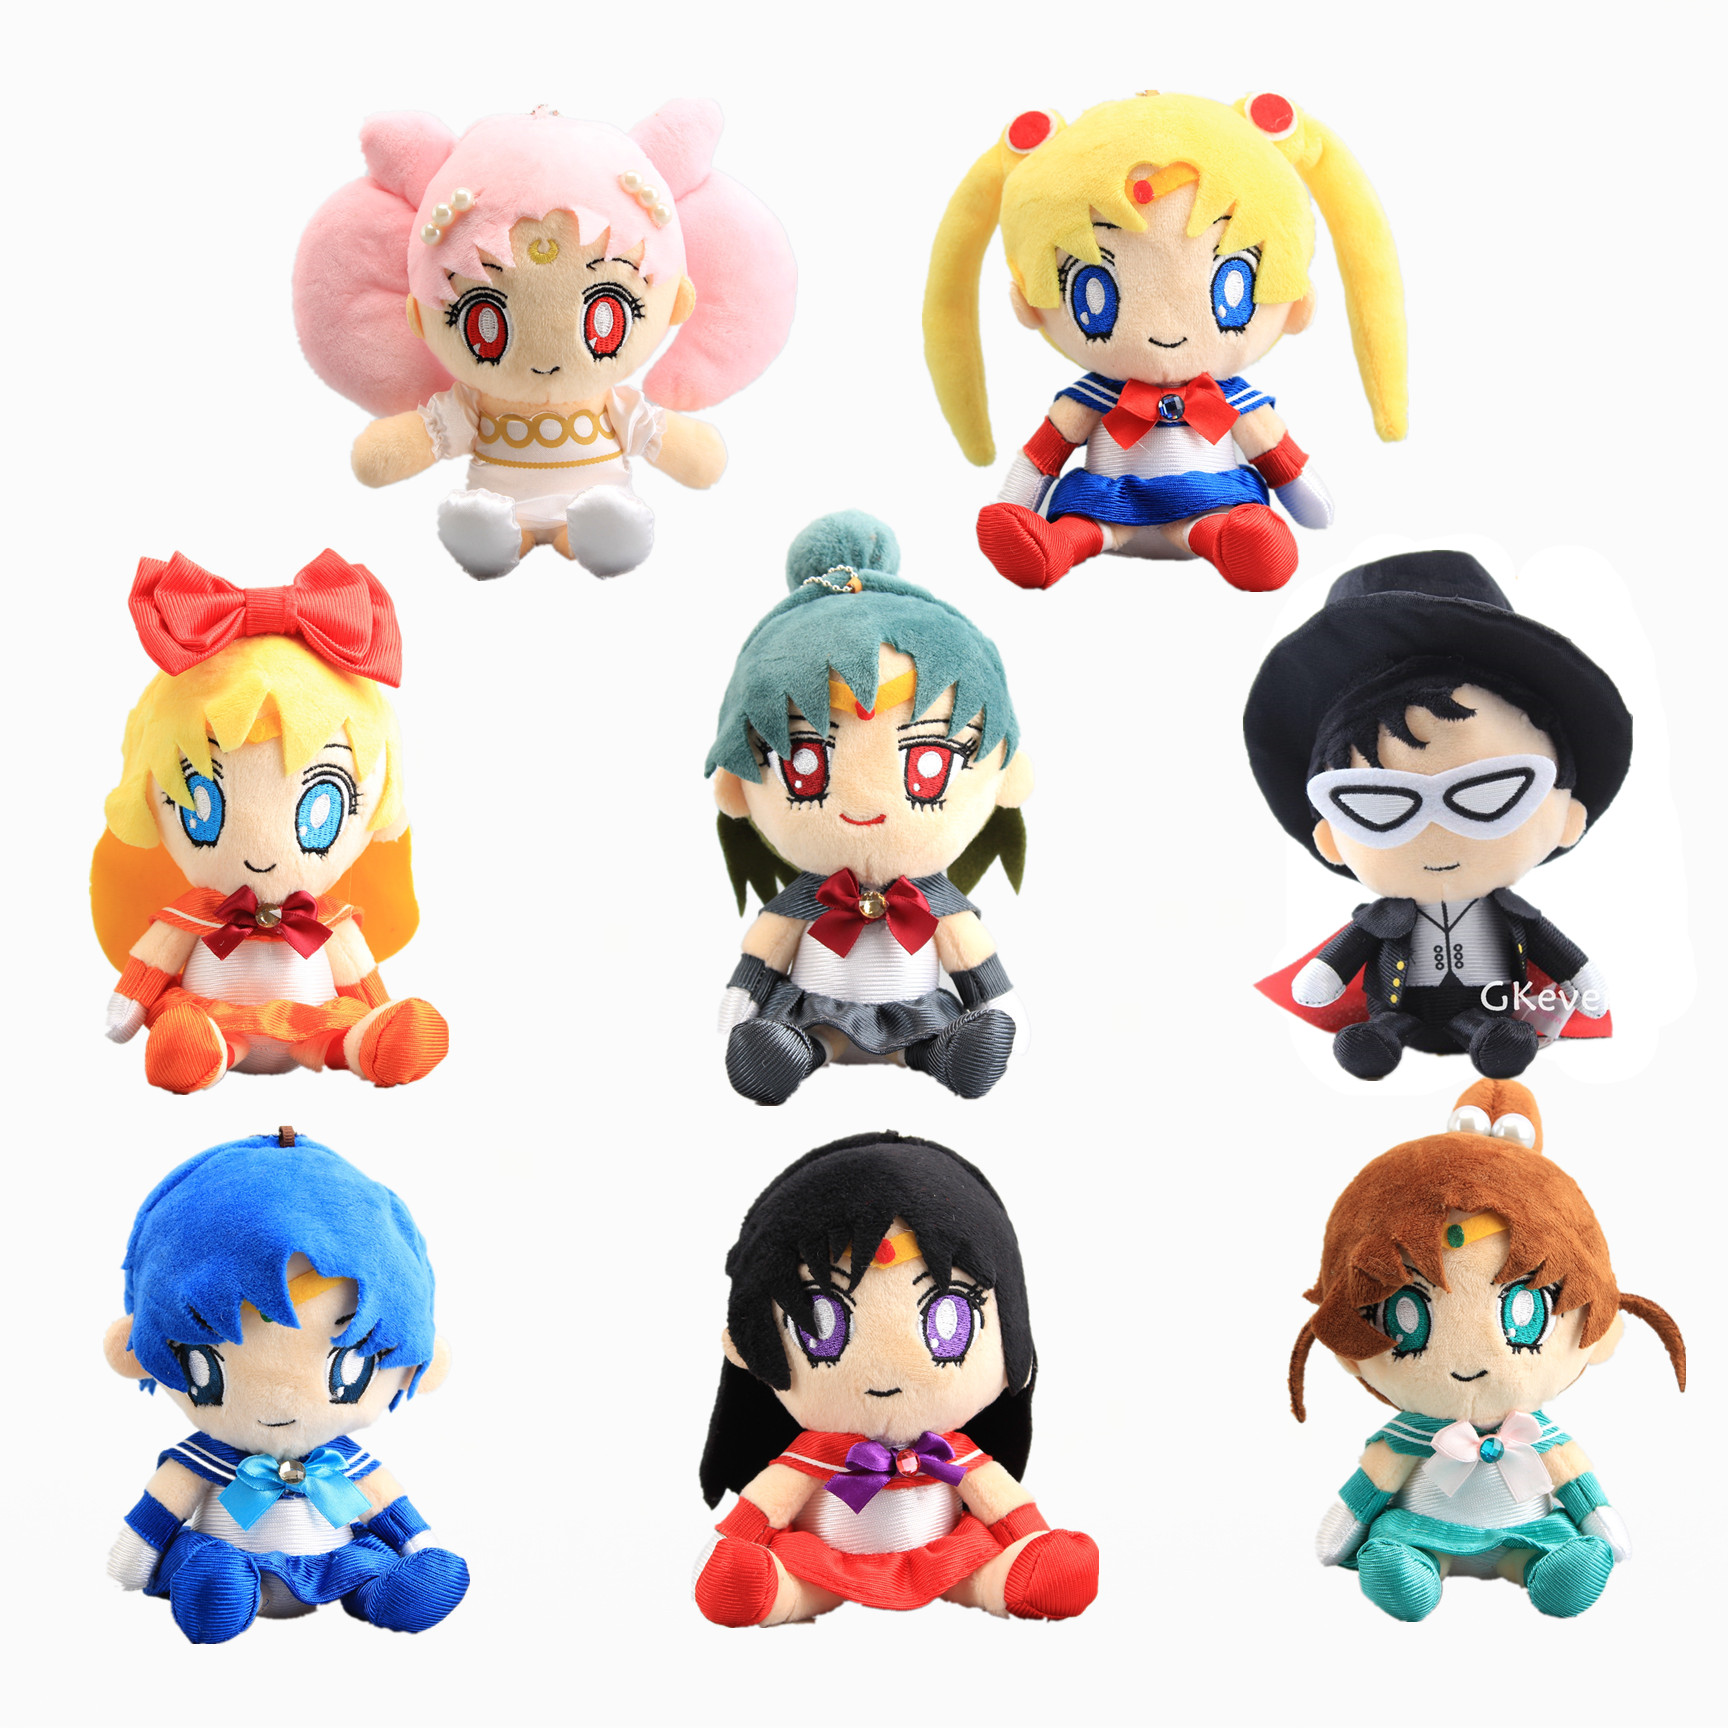 17-20 Cm Anime Sailor Moon Plush Doll Toys Peluche New Cute Sailor Mars Jupiter Mercury Venus Figure Toy Women Kid Birthday Gift